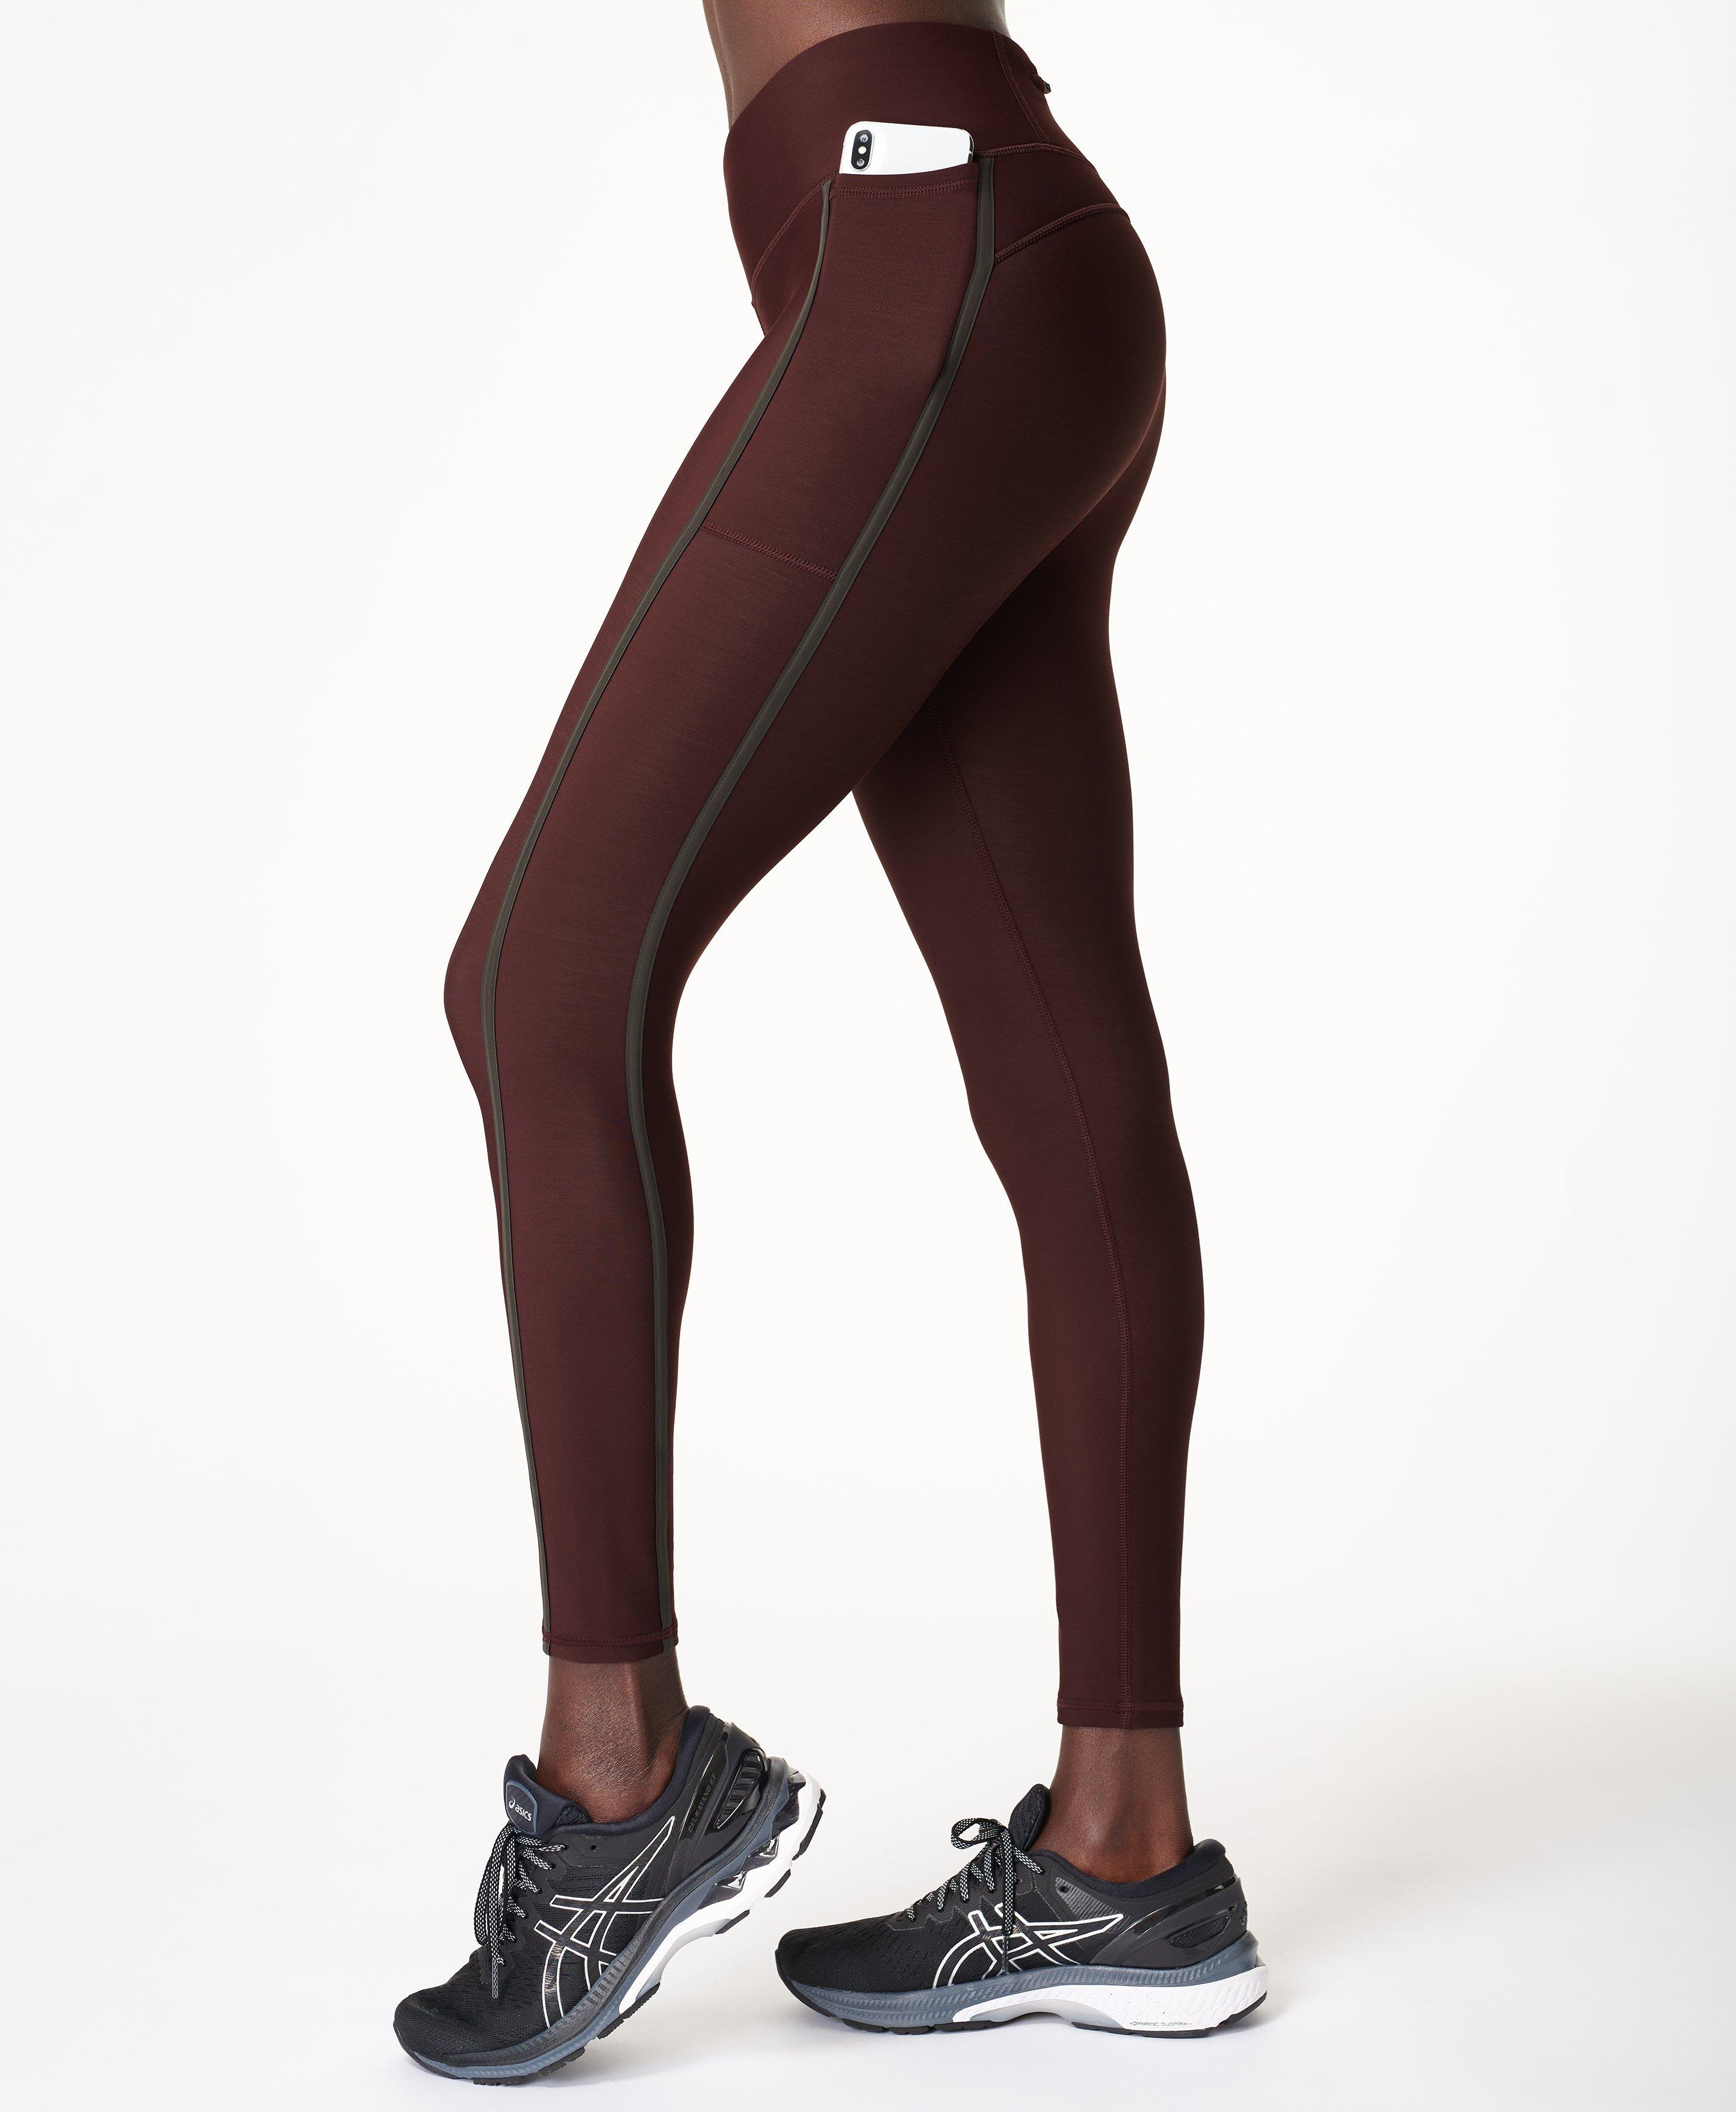 Take it outdoors in these insulating thermal leggings. Made for outdoor training, the technical moisture-wicking fabric is fleece lined for extra warmth in the cold.